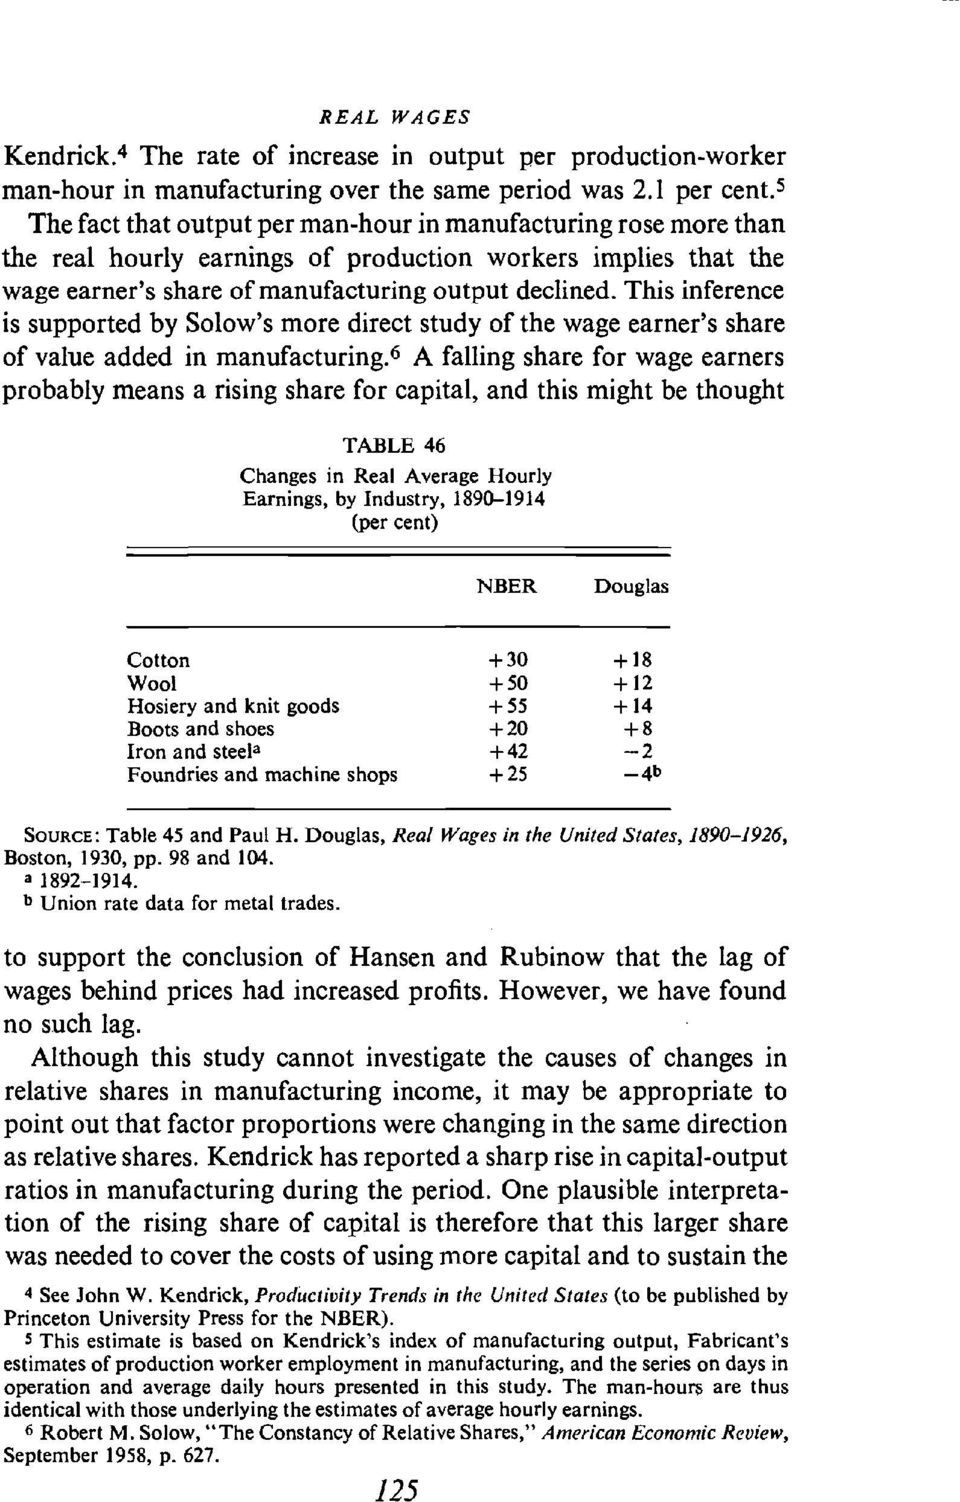 This inference is supported by Solow's more direct study of the wage earner's share of value added in manufacturing.